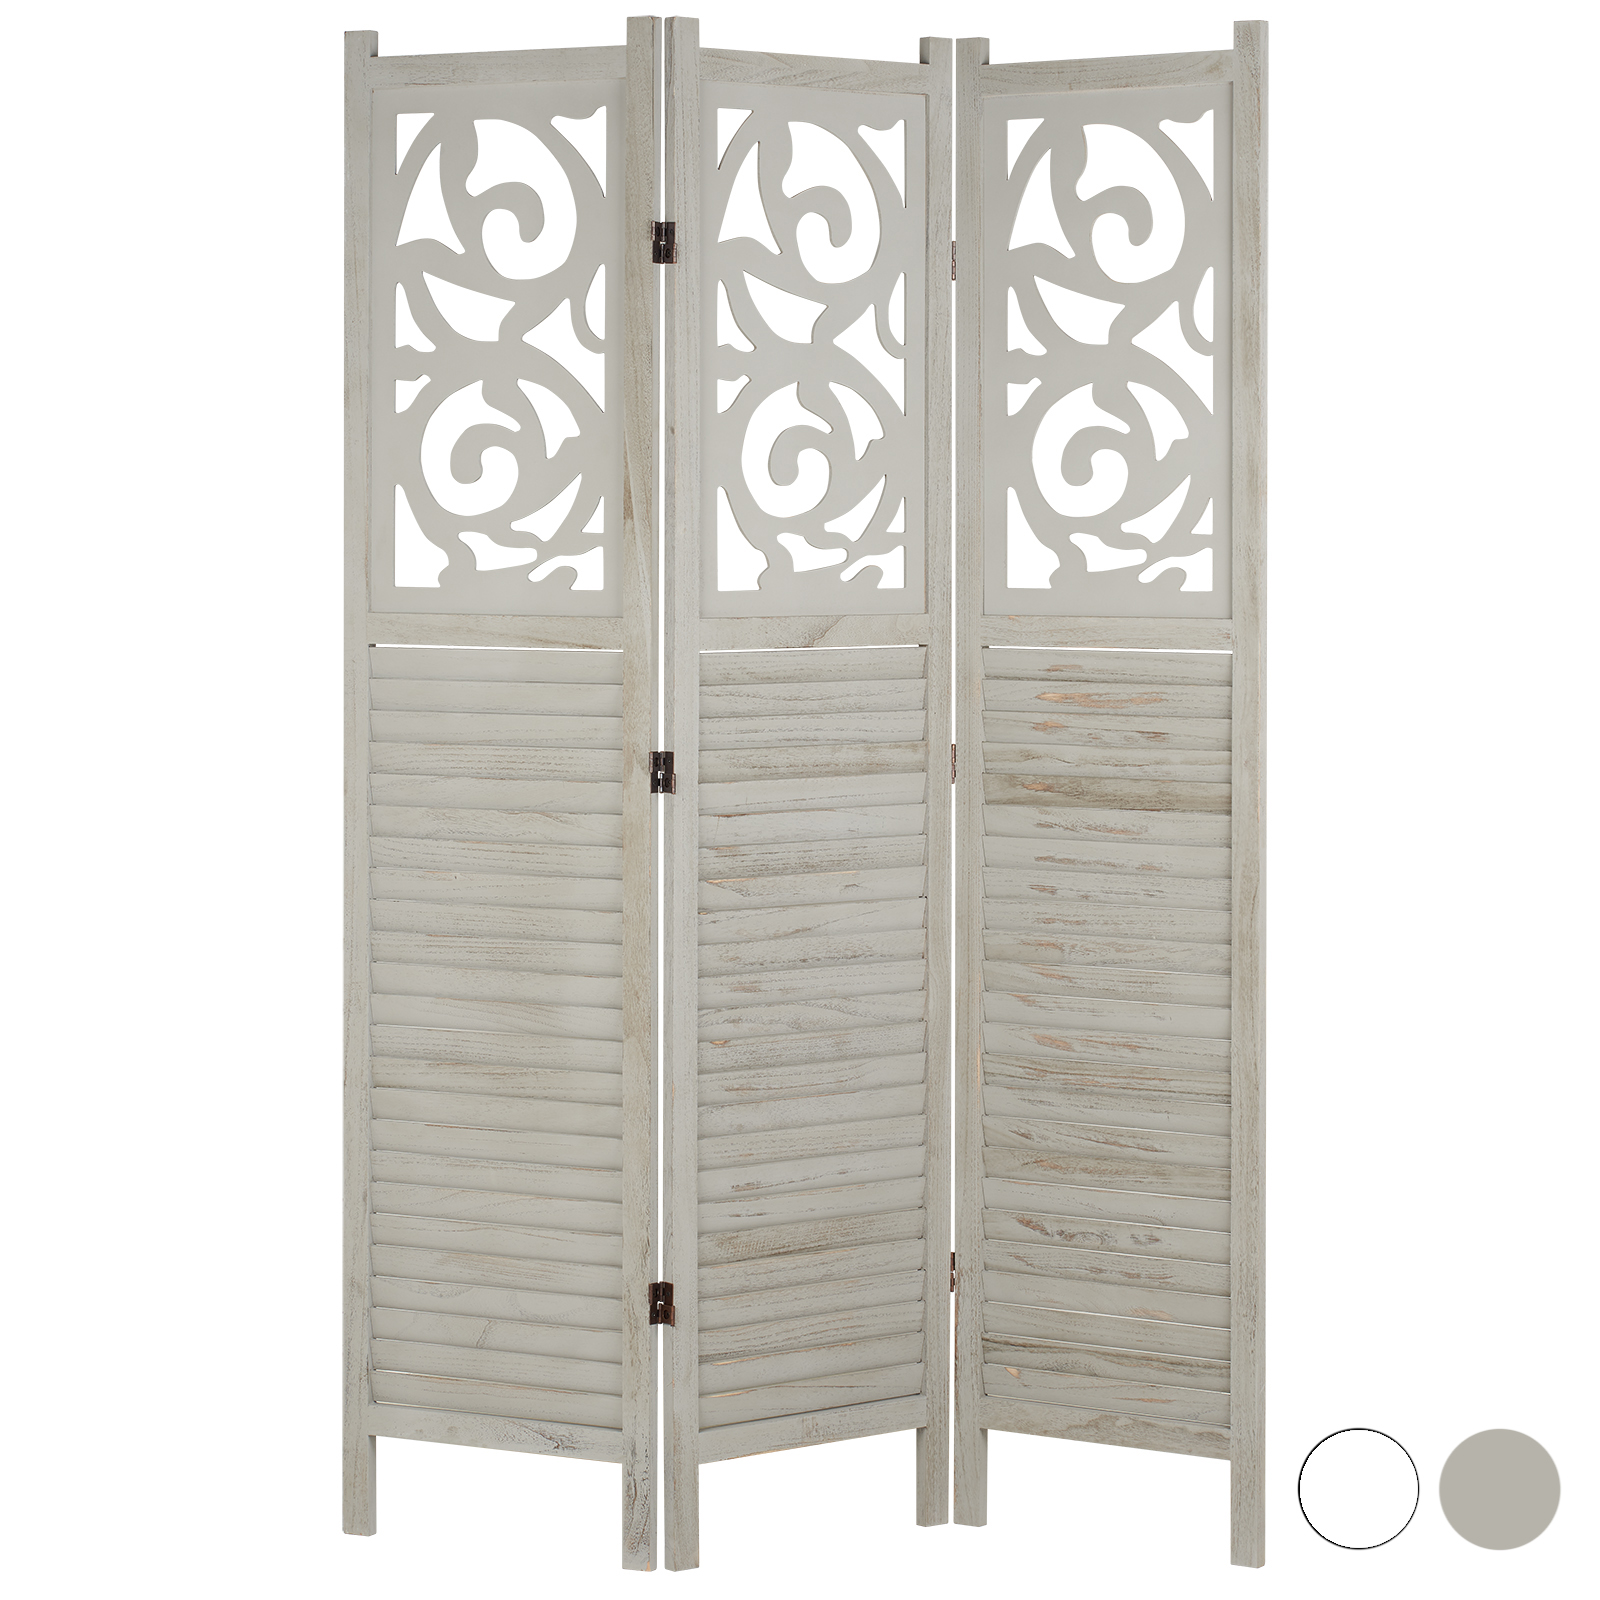 Details About Hartleys 3 Panel Wooden Room Divider Grey White Folding Parion Privacy Screen